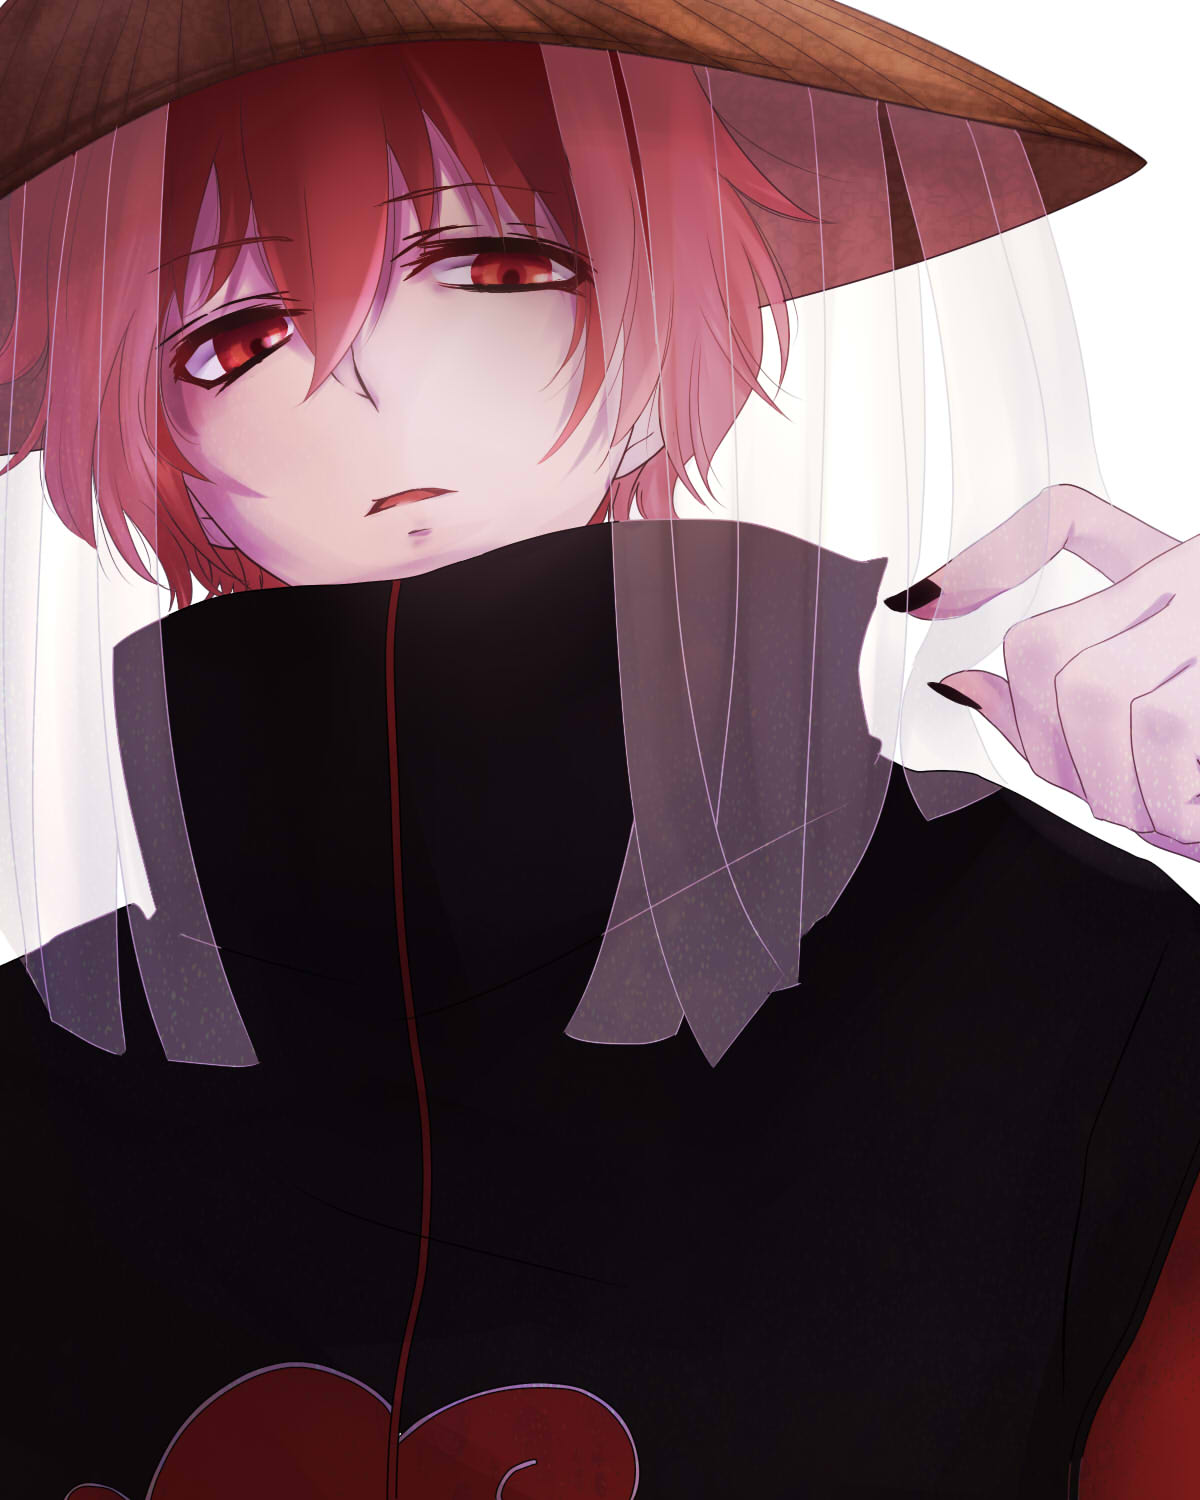 Sasori on ShinobiXReader - DeviantArt